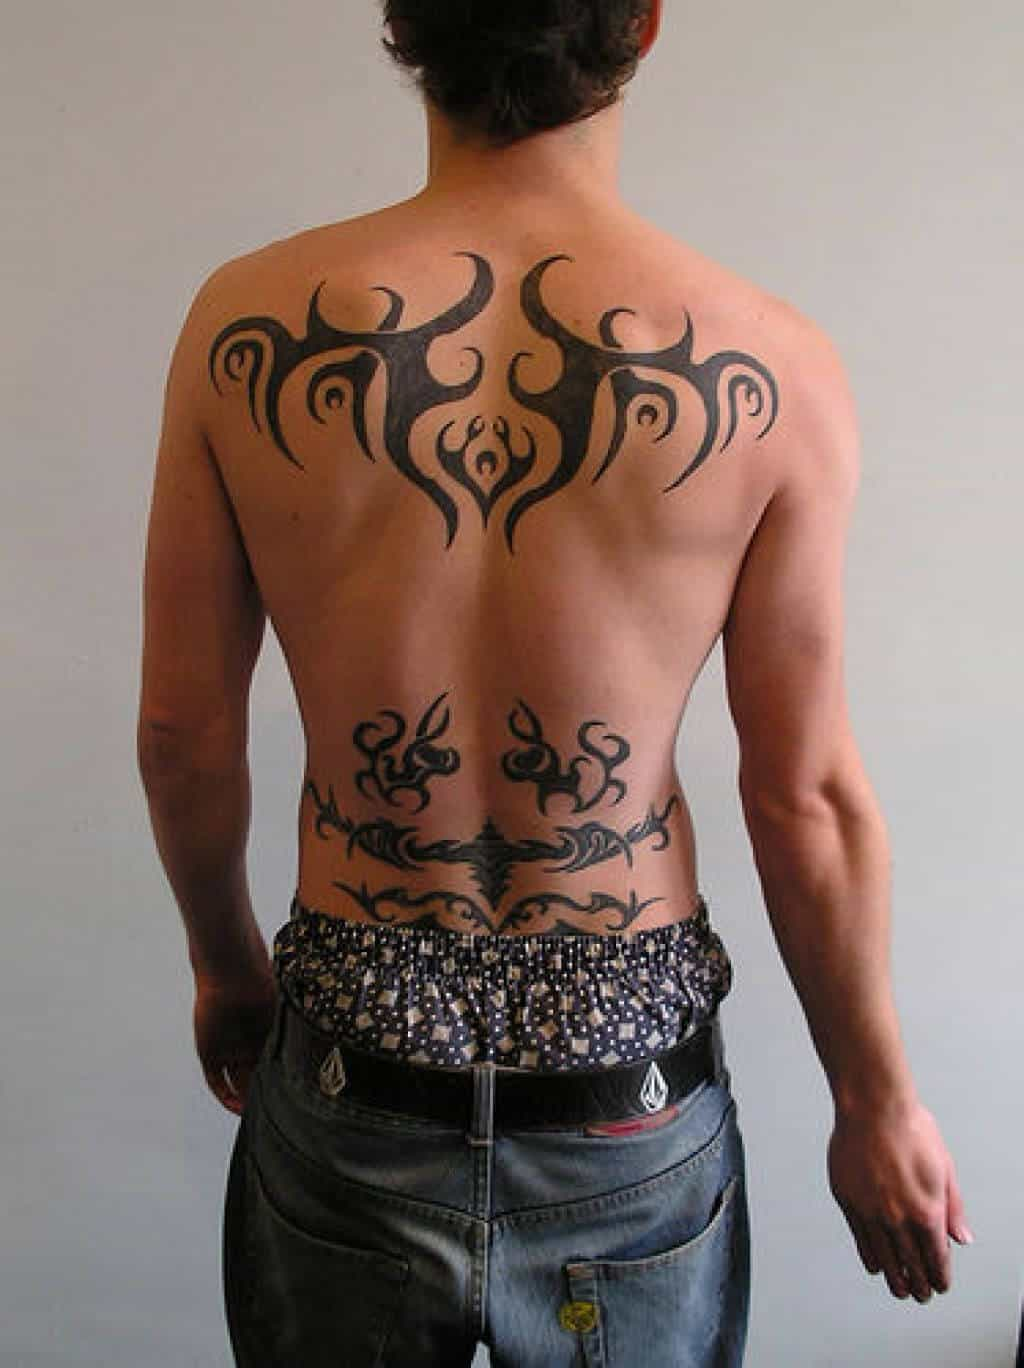 lower back tattoos for men ideas and designs for guys. Black Bedroom Furniture Sets. Home Design Ideas